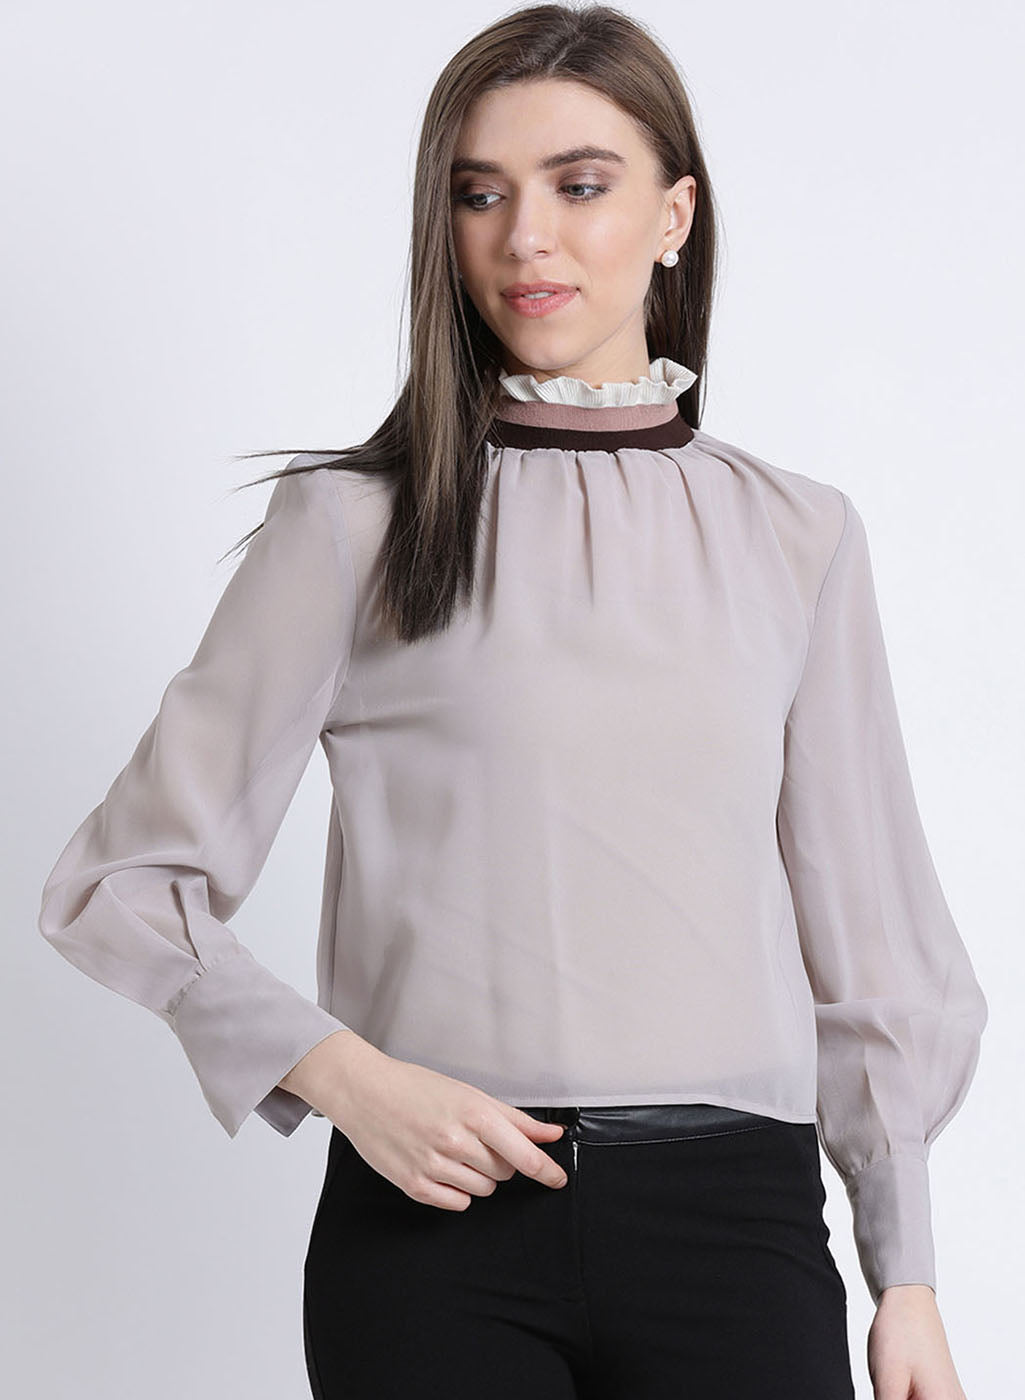 Future Femme High Neck Rib Top (Buy 2 or more Get 20% Off)